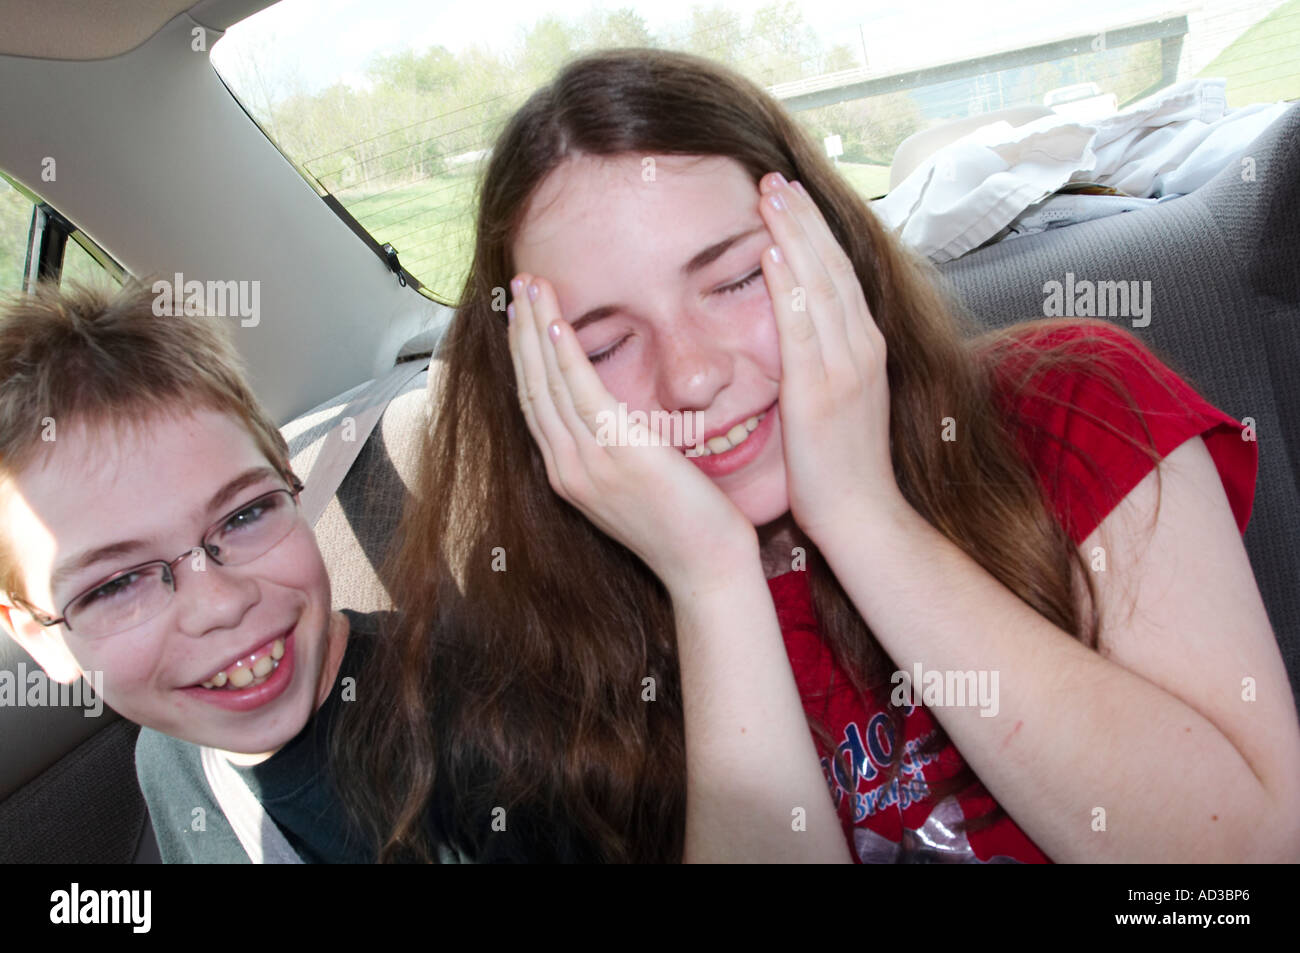 A brother and sister making funny faces in the back seat of a car, automobile. Stock Photo